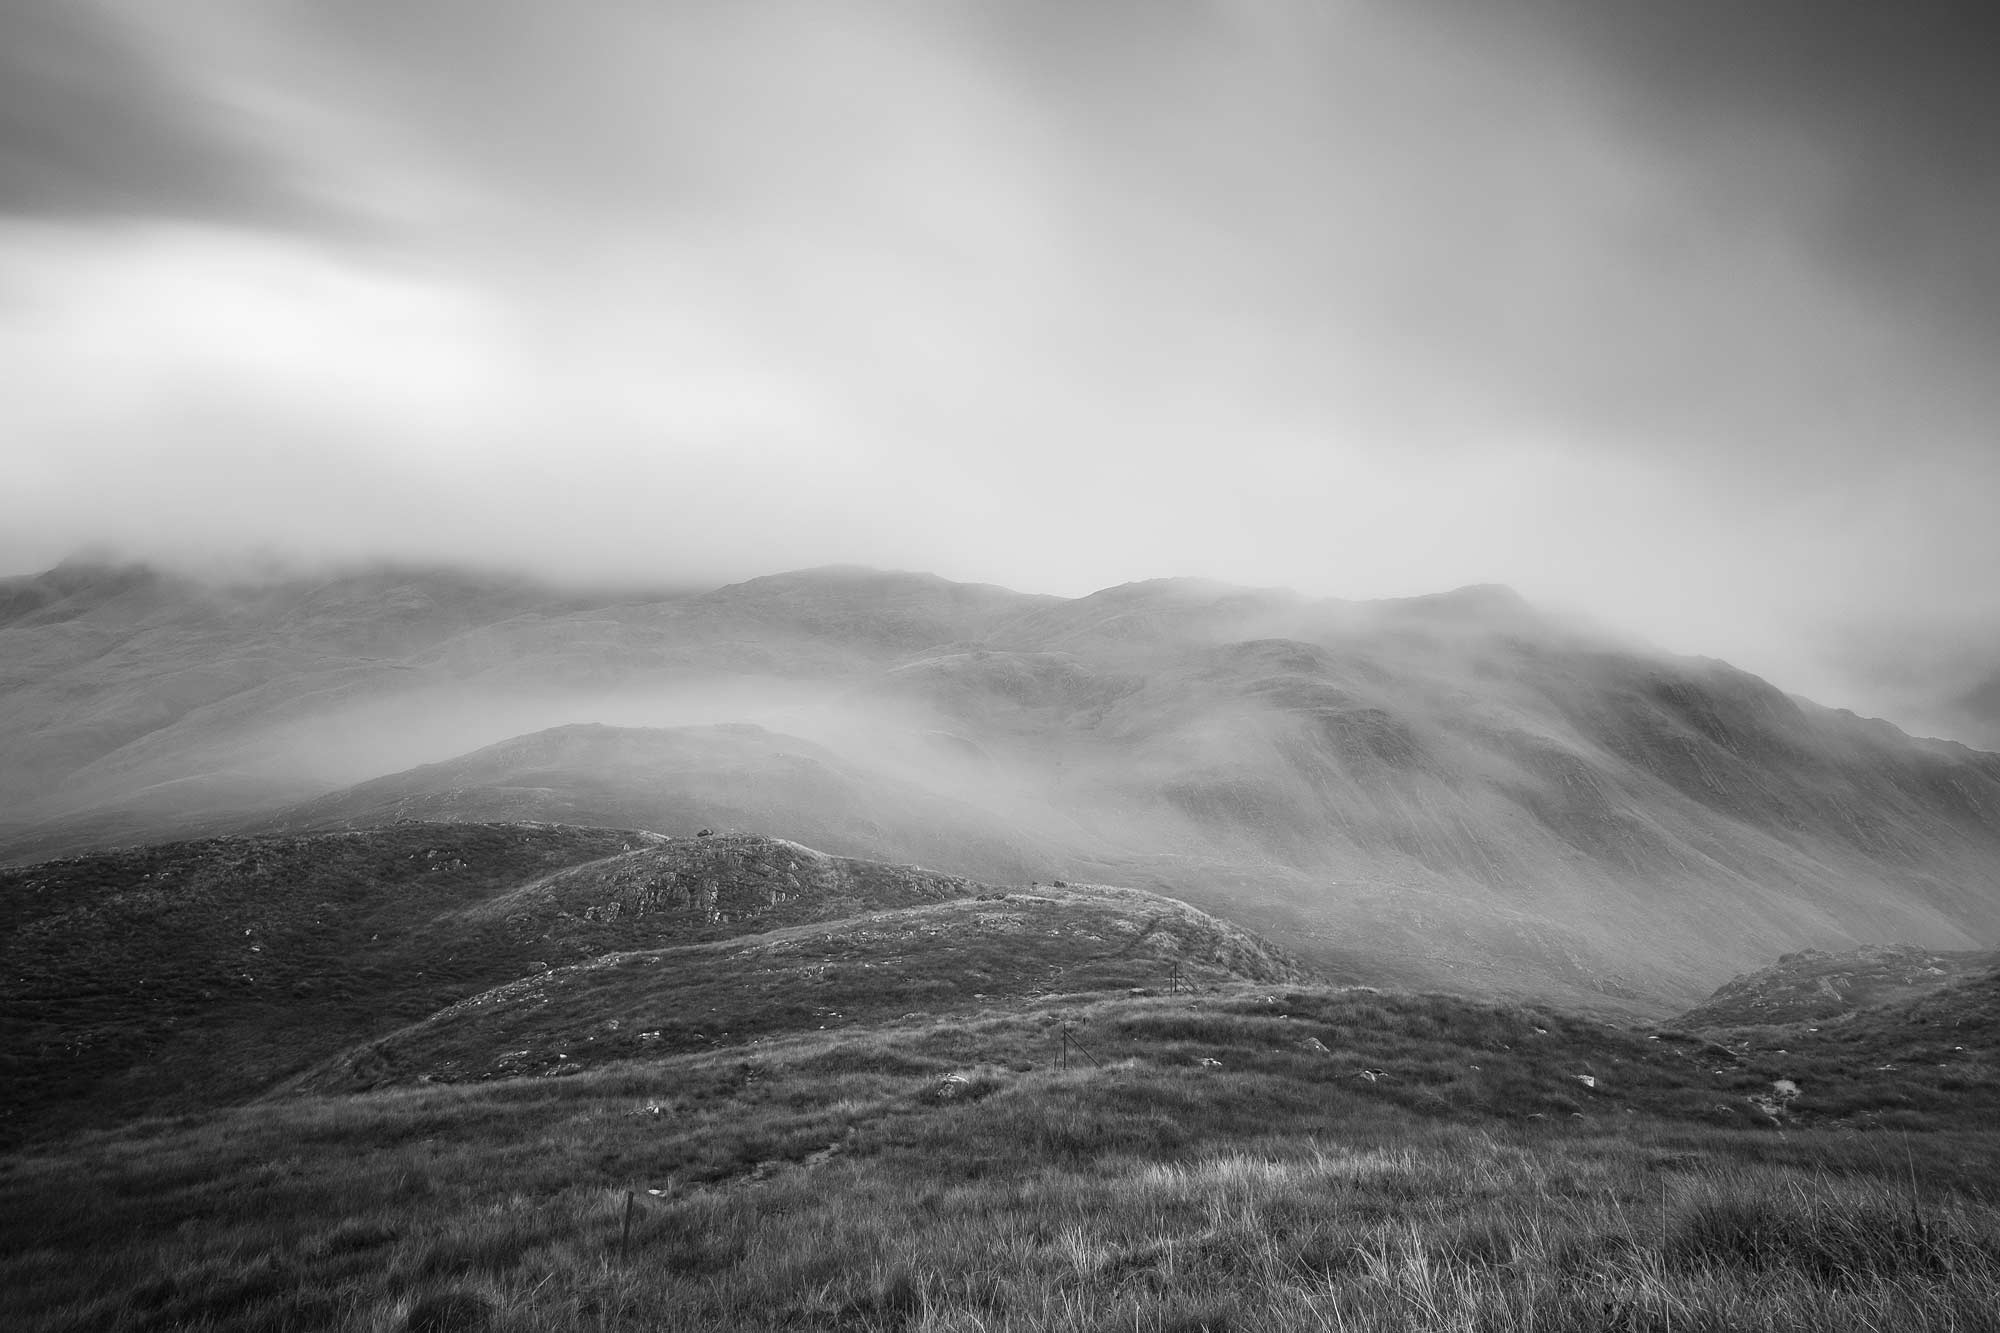 Dramatic black and white landscape photograph Mam Barrisdale, Knoydart, Scotland